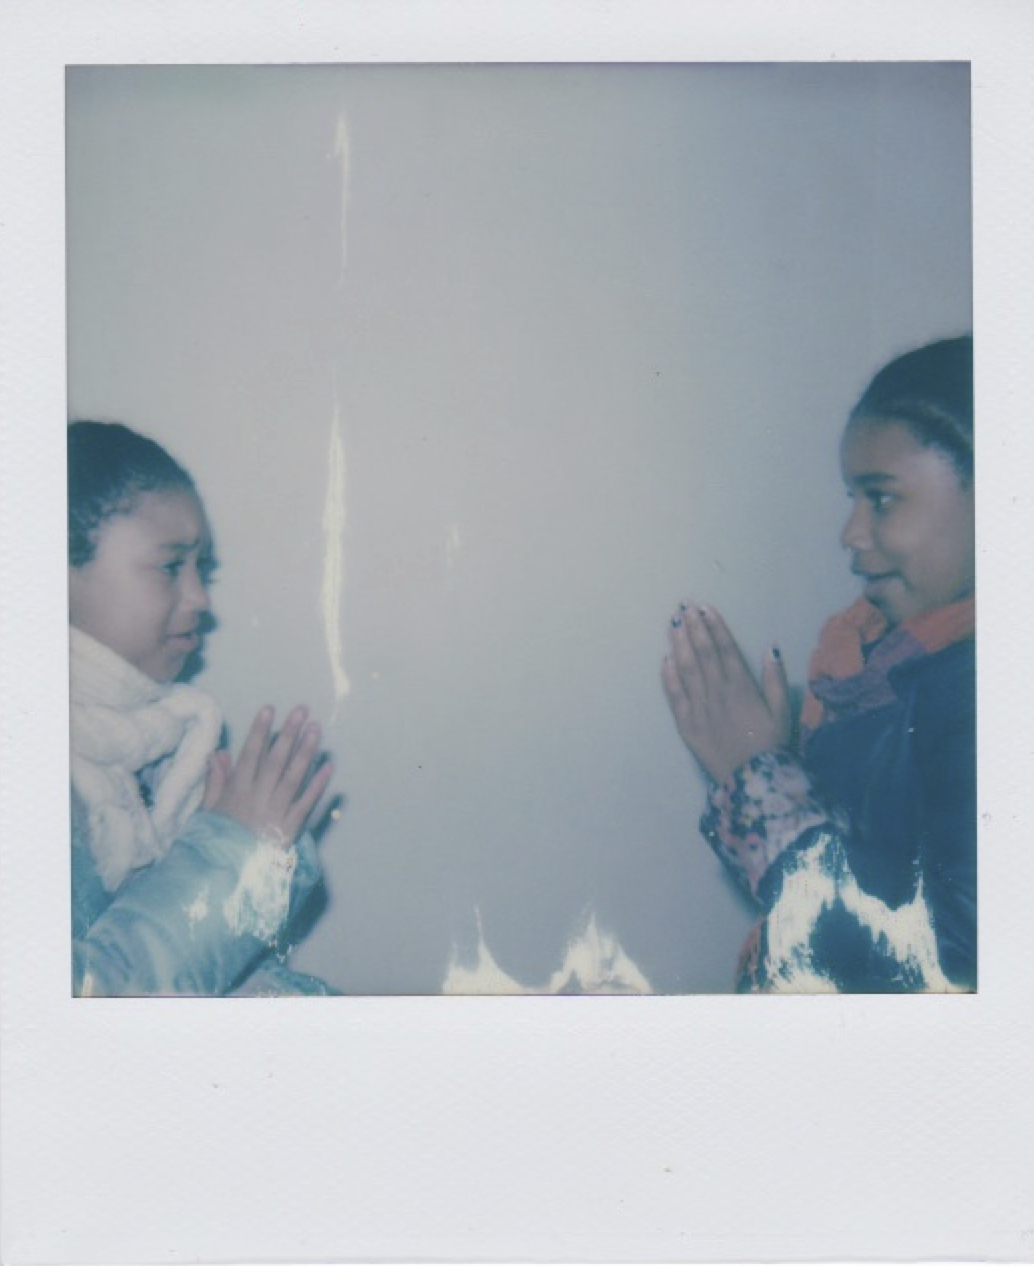 Woods_Sadie Woods in collaboration with Jessica Woods_A Playground Study_Polaroid Film_01.jpg